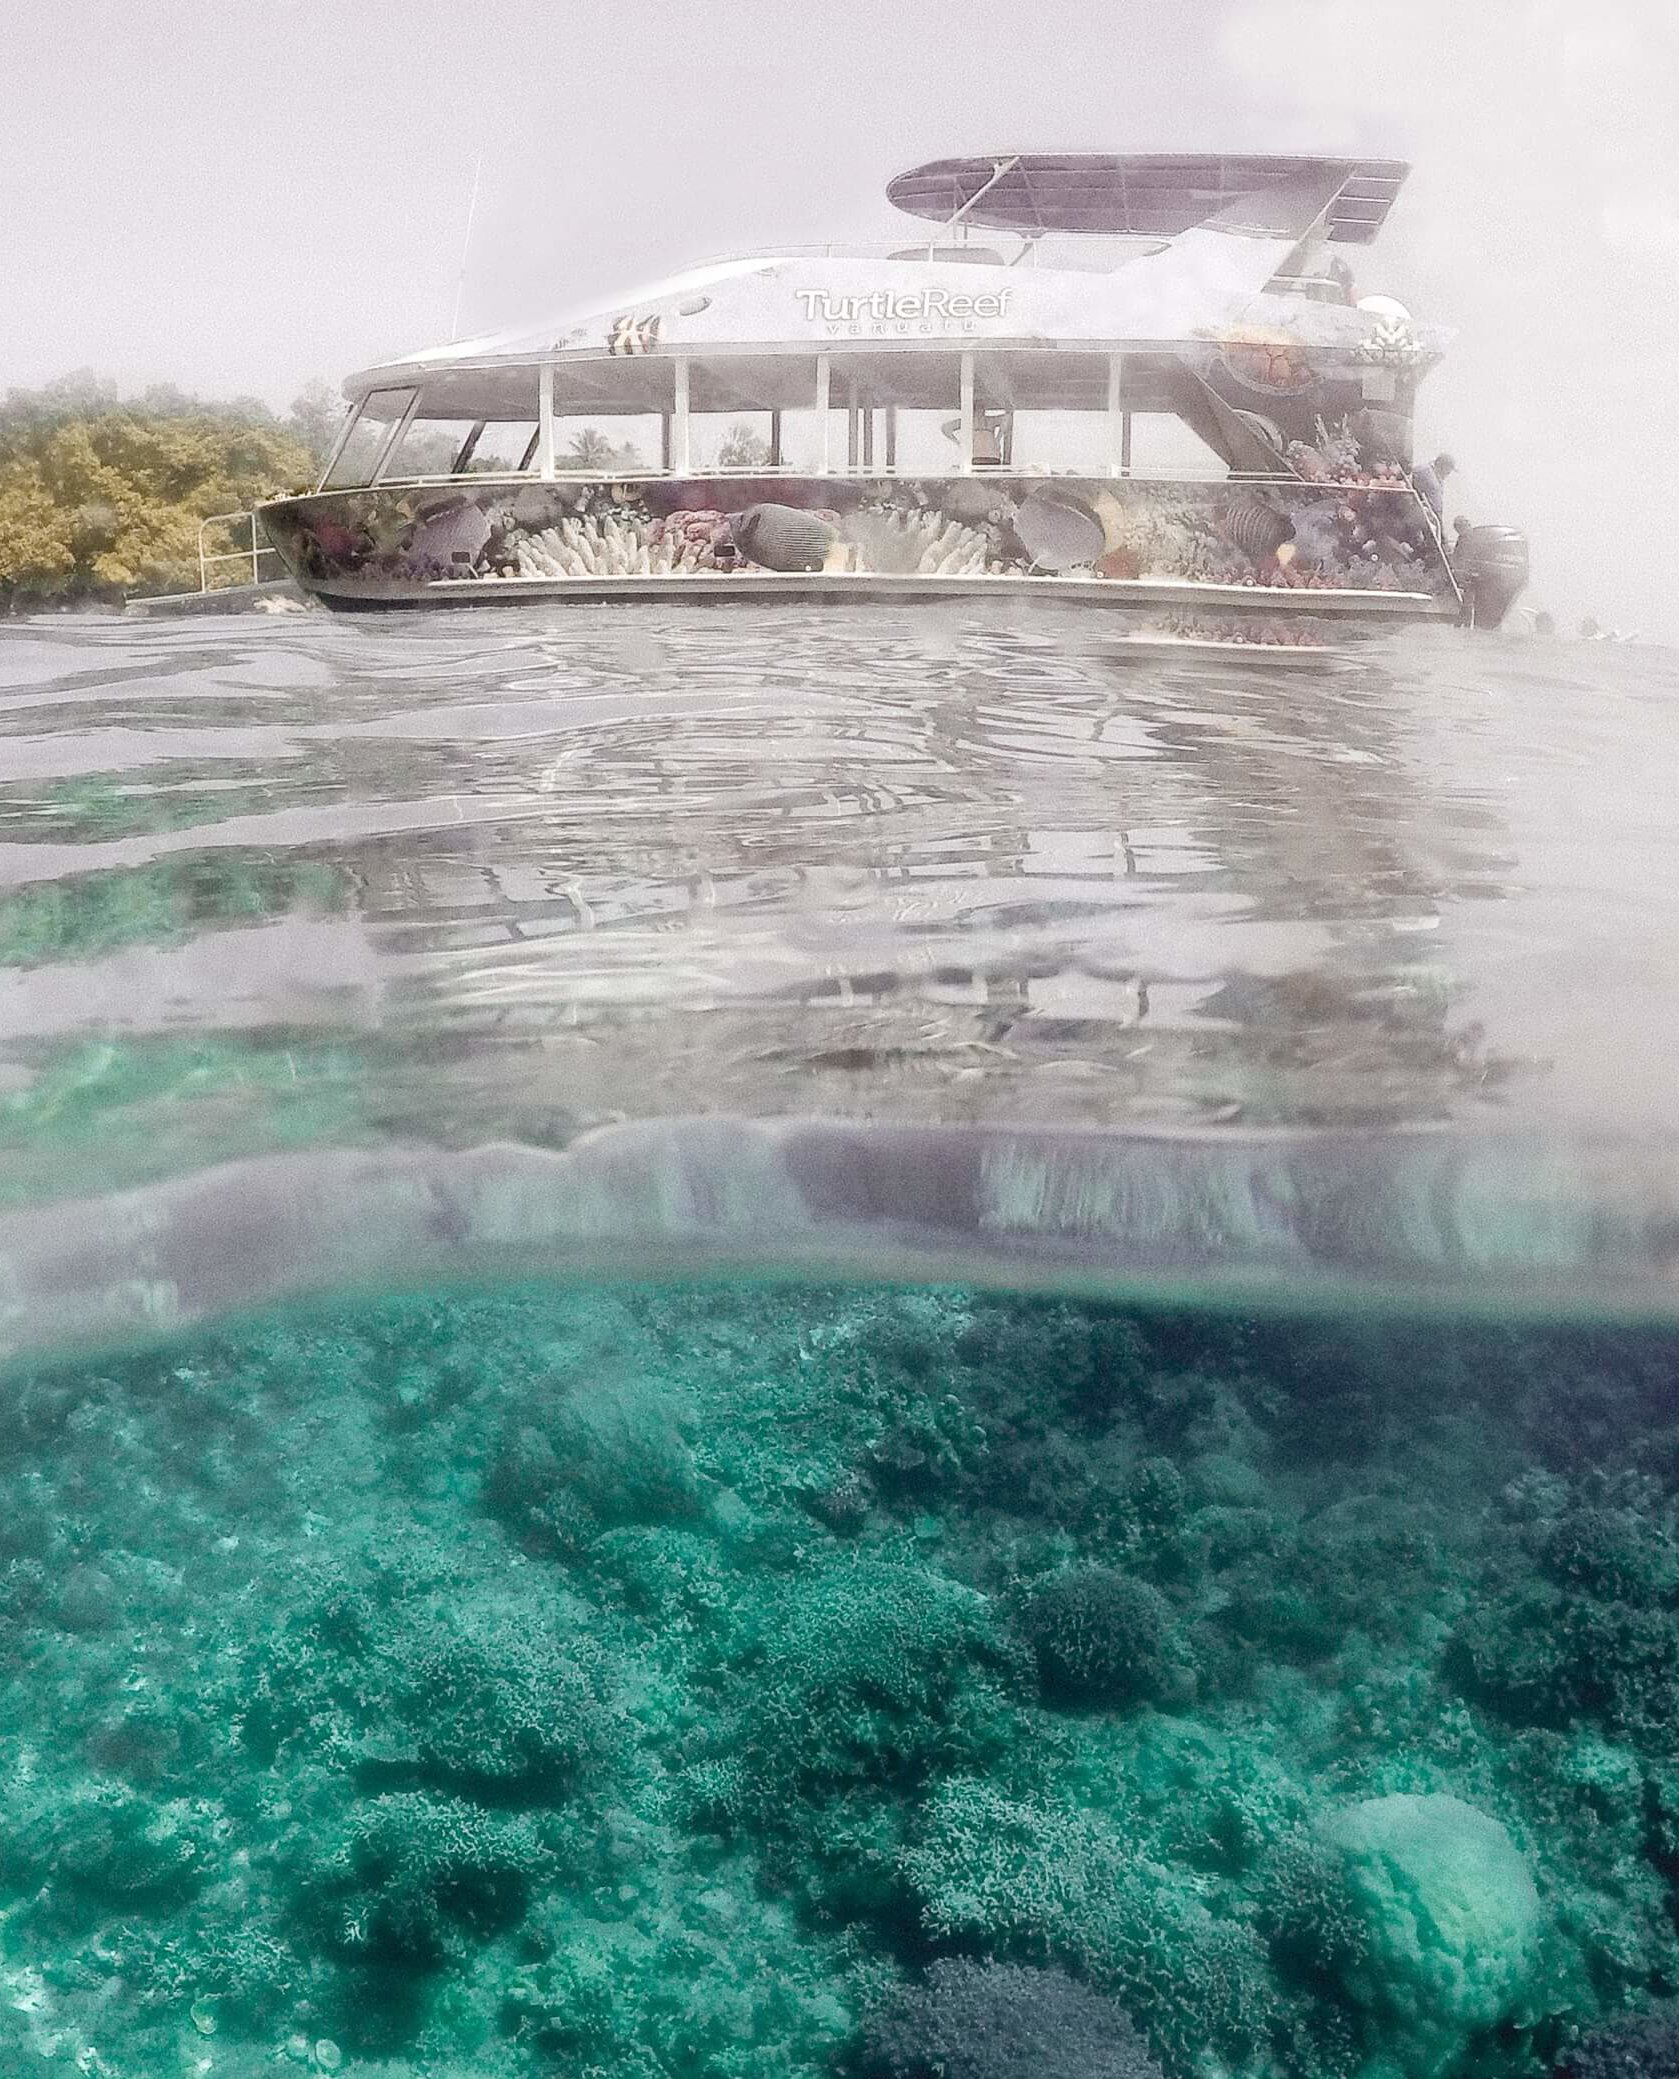 A DAY OF ADVENTURE WITH TURTLE REEF CRUISES